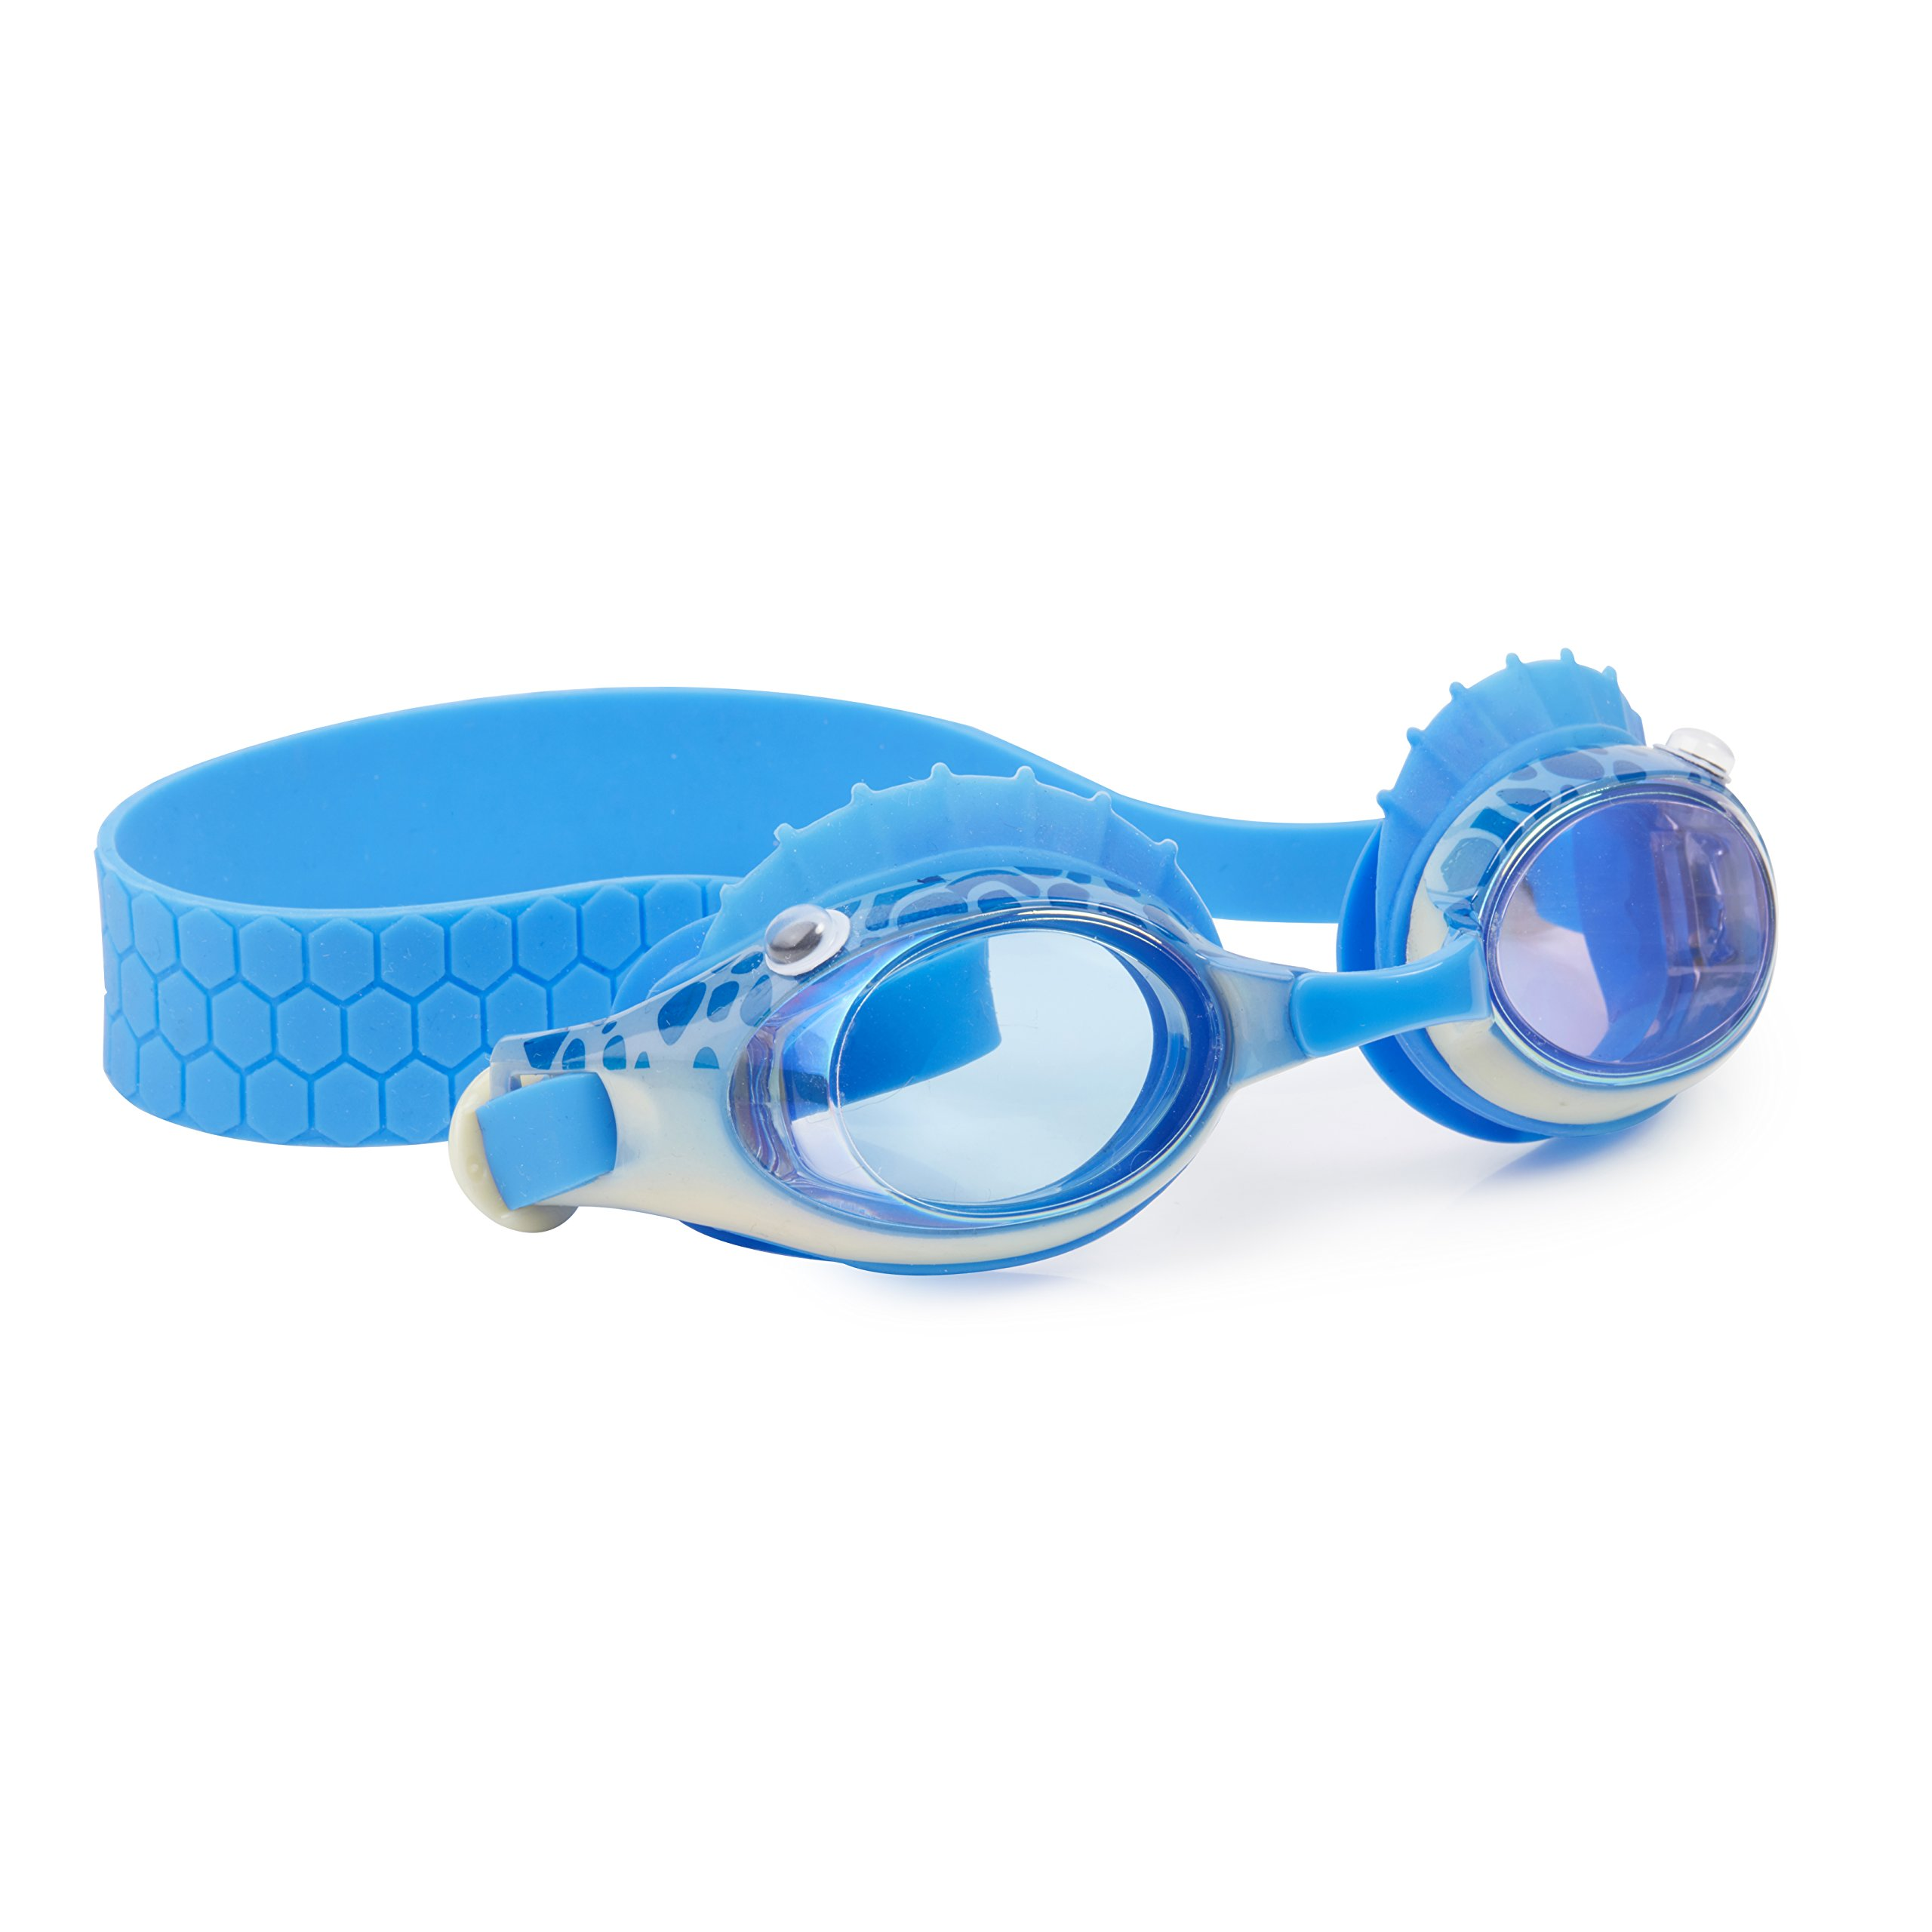 Ocean Themed Swimming Goggles For Kids by Bling2O - Anti Fog, No Leak, Non Slip and UV Protection - Fun Water Accessory Includes Hard Case